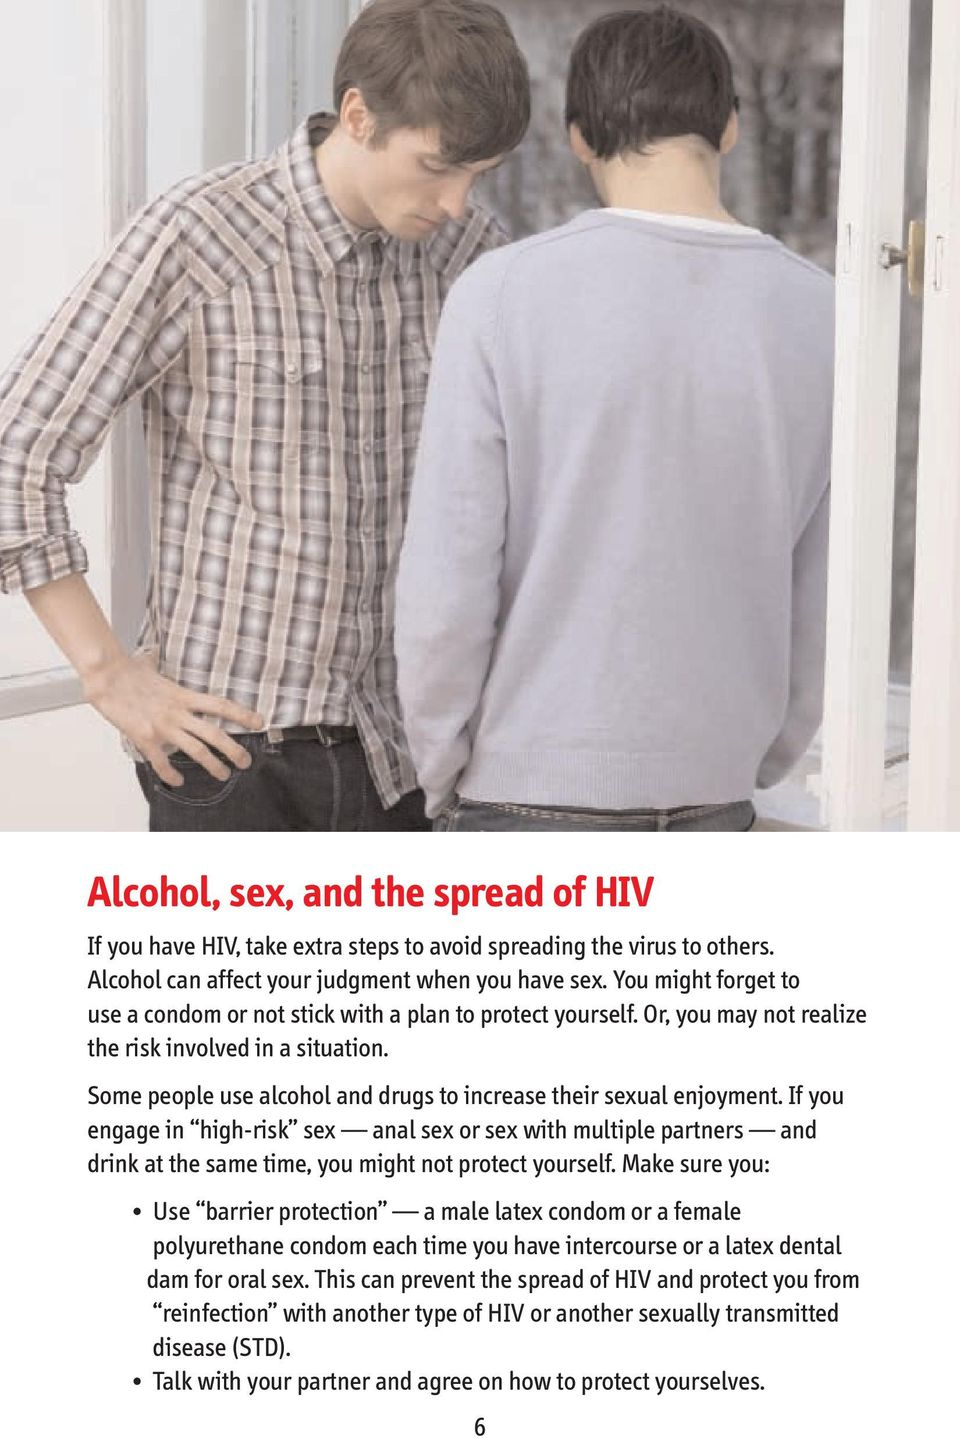 Some people use alcohol and drugs to increase their sexual enjoyment. If you engage in high risk sex anal sex or sex with multiple partners and drink at the same time, you might not protect yourself.